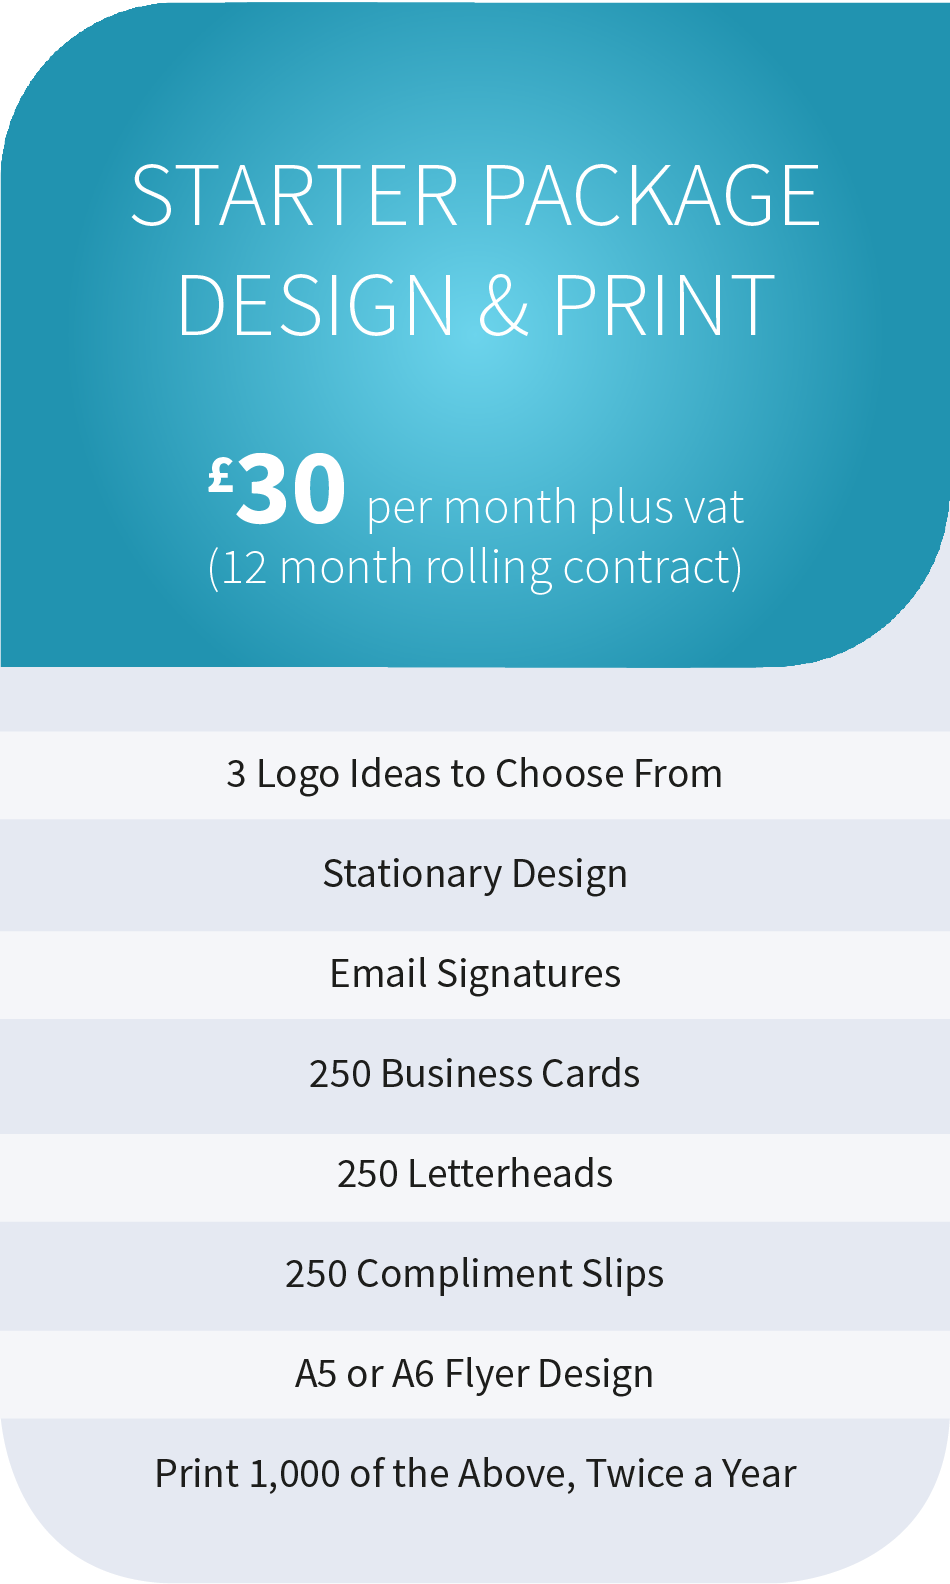 Pay Per Month Starter Design Package